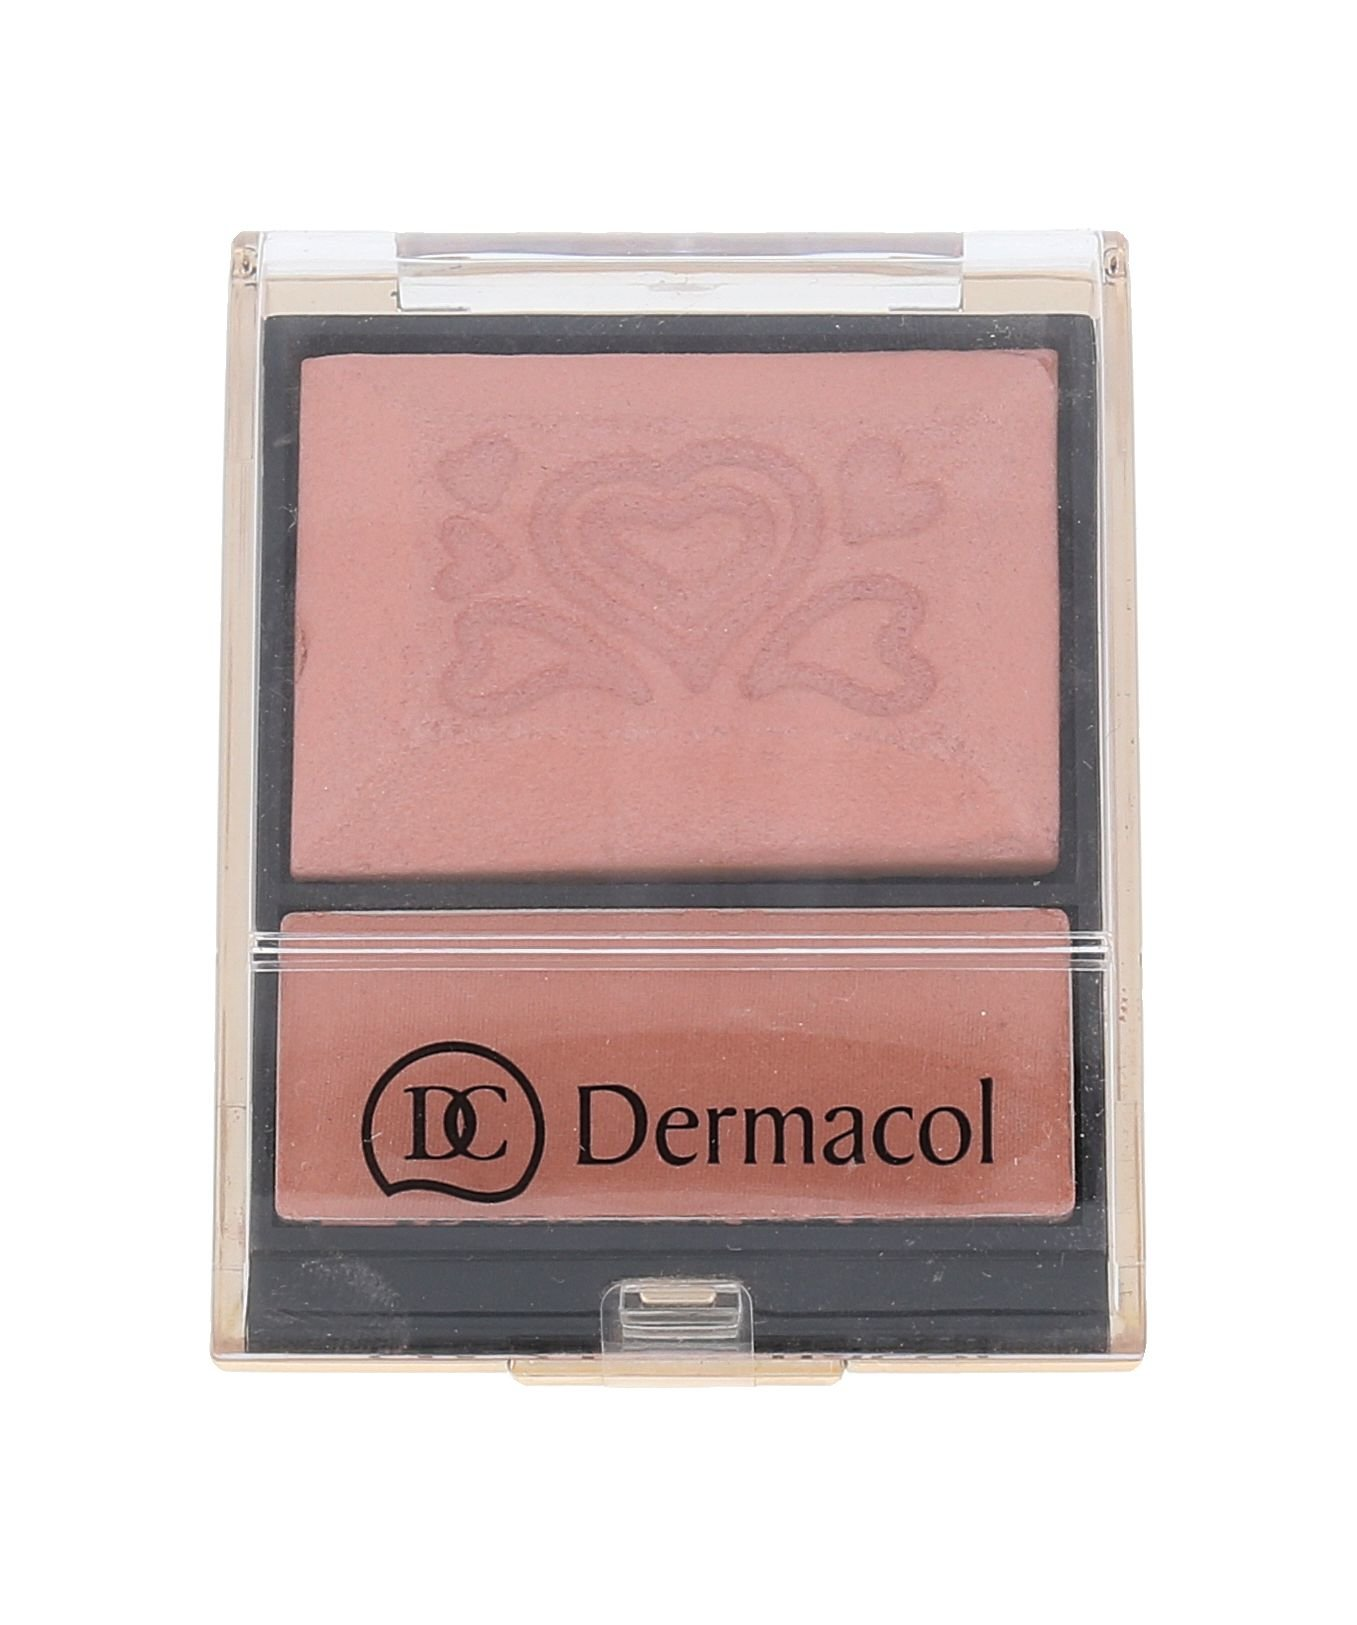 Dermacol Blush & Illuminator Cosmetic 9ml 3